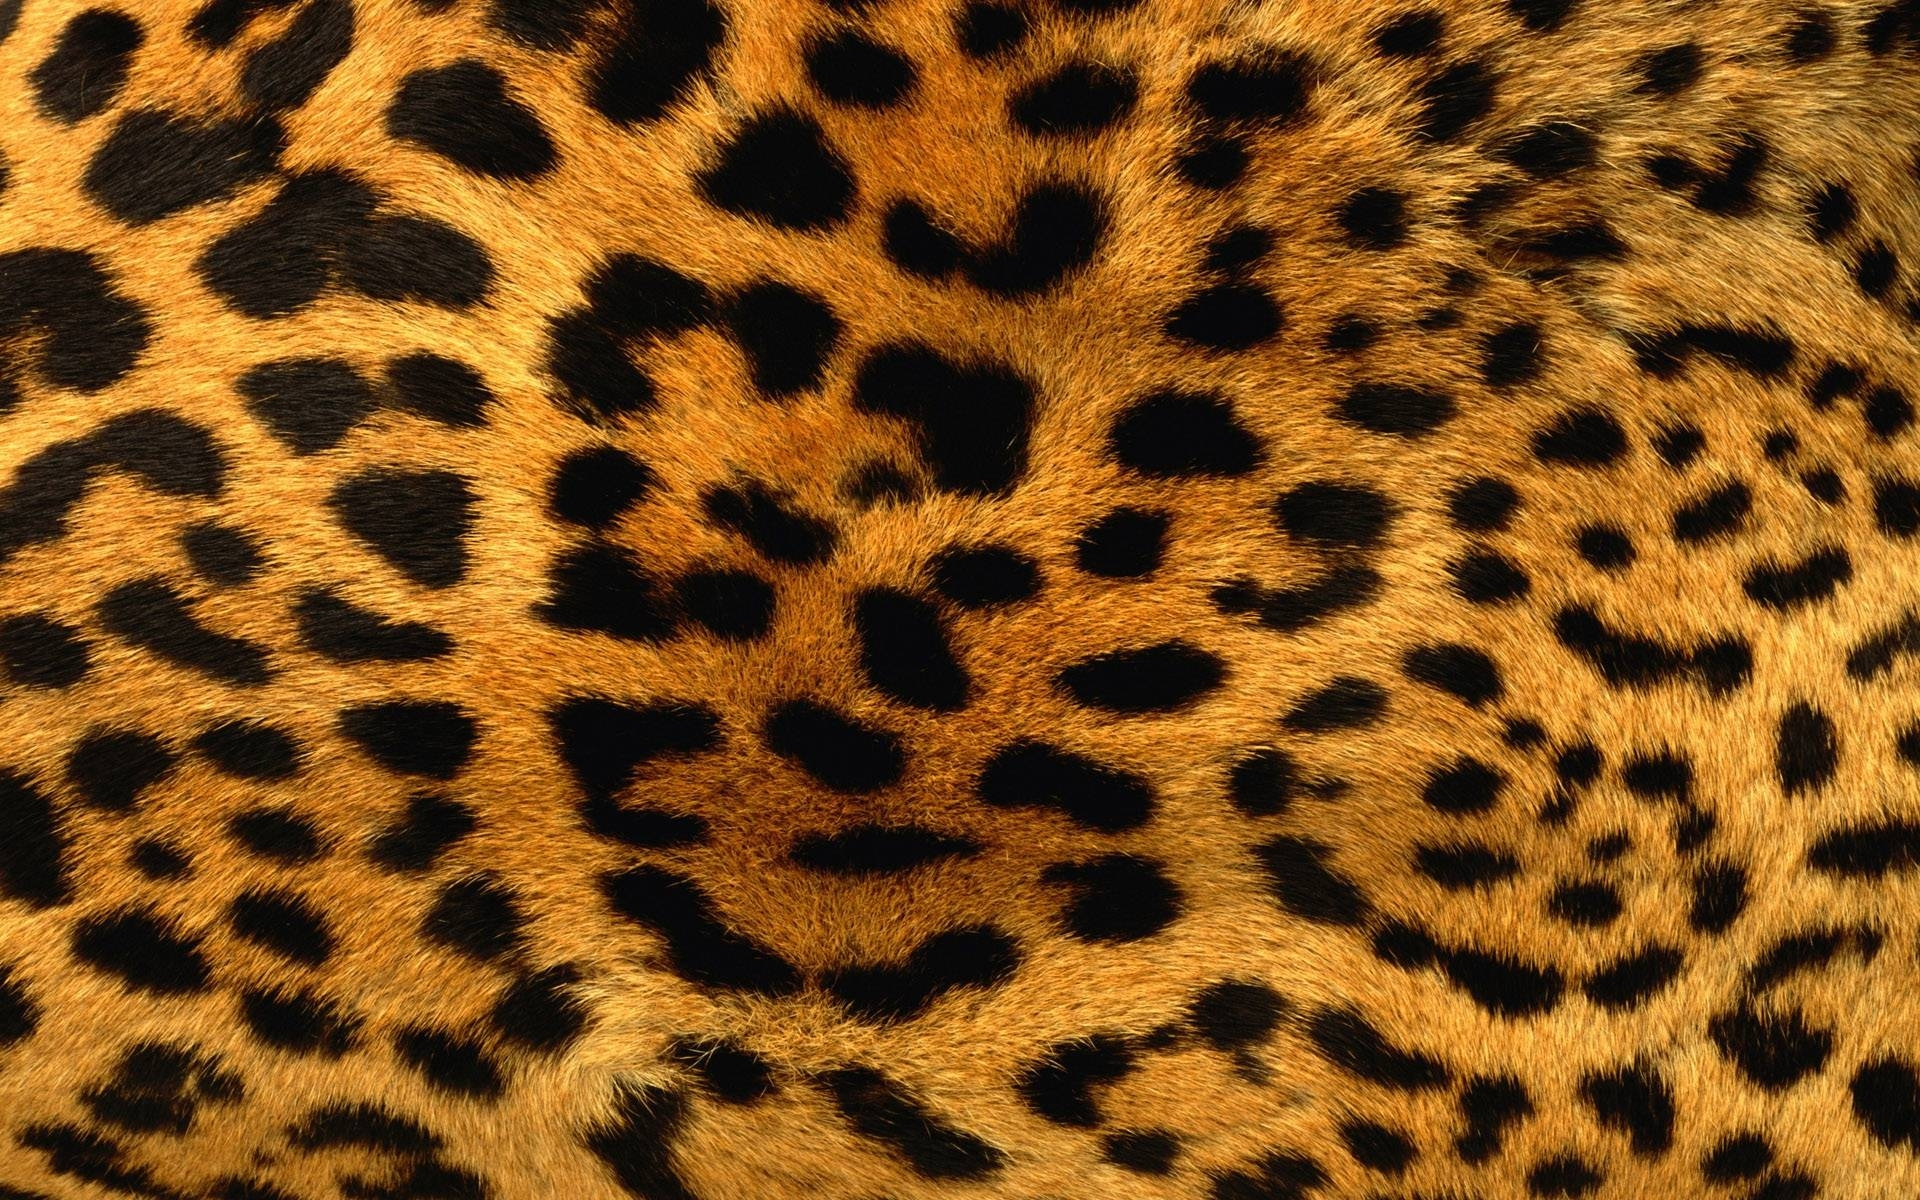 animal print desktop backgrounds - wallpaper cave